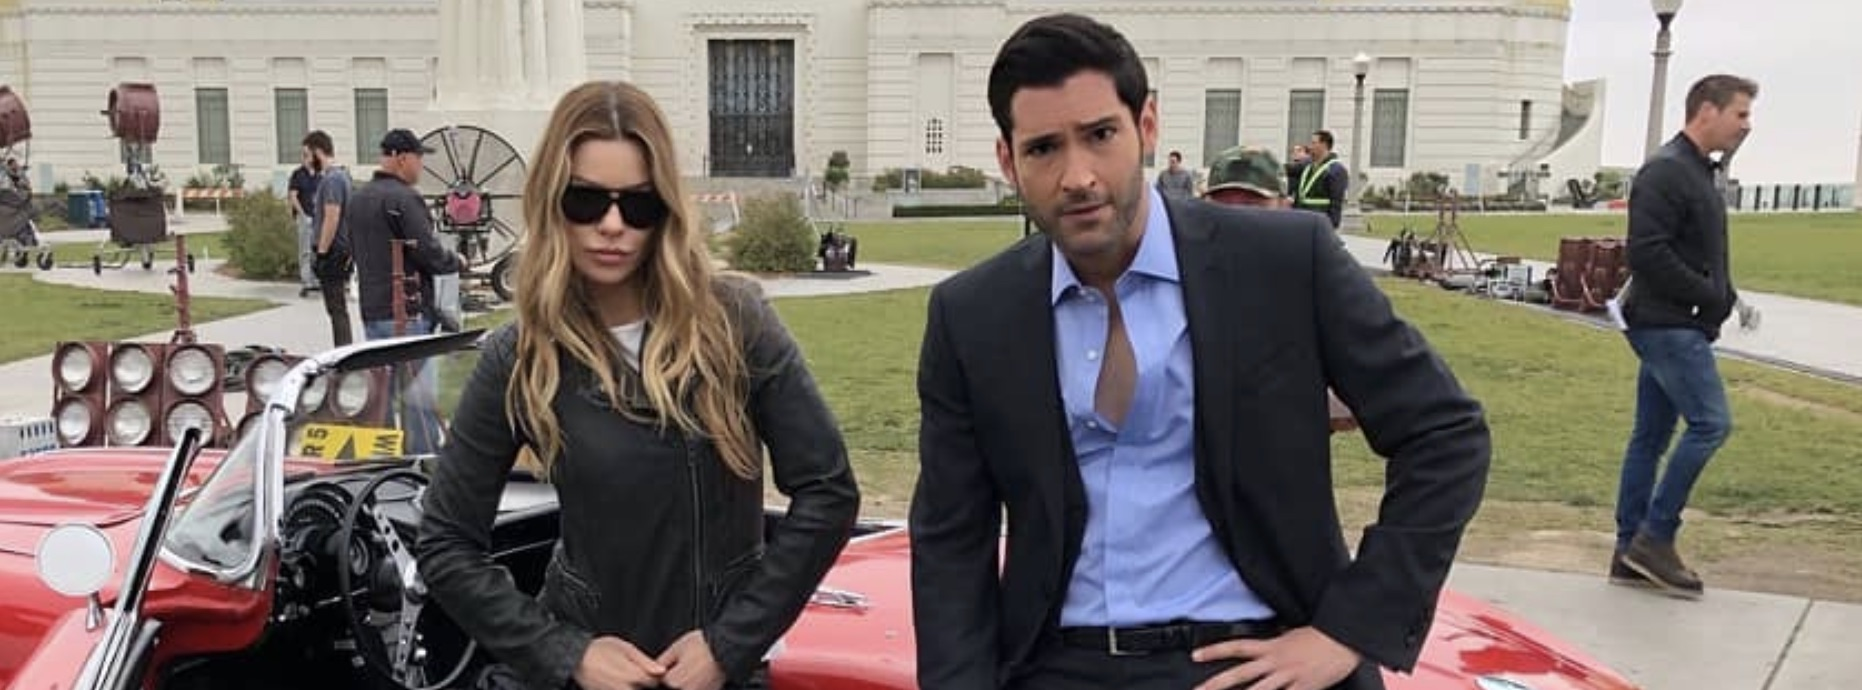 Lauren German, Chloe Decker, Tom Ellis, Lucifer Morningstar, Netflix-https://www.instagram.com/p/BojWc6PjoR4/